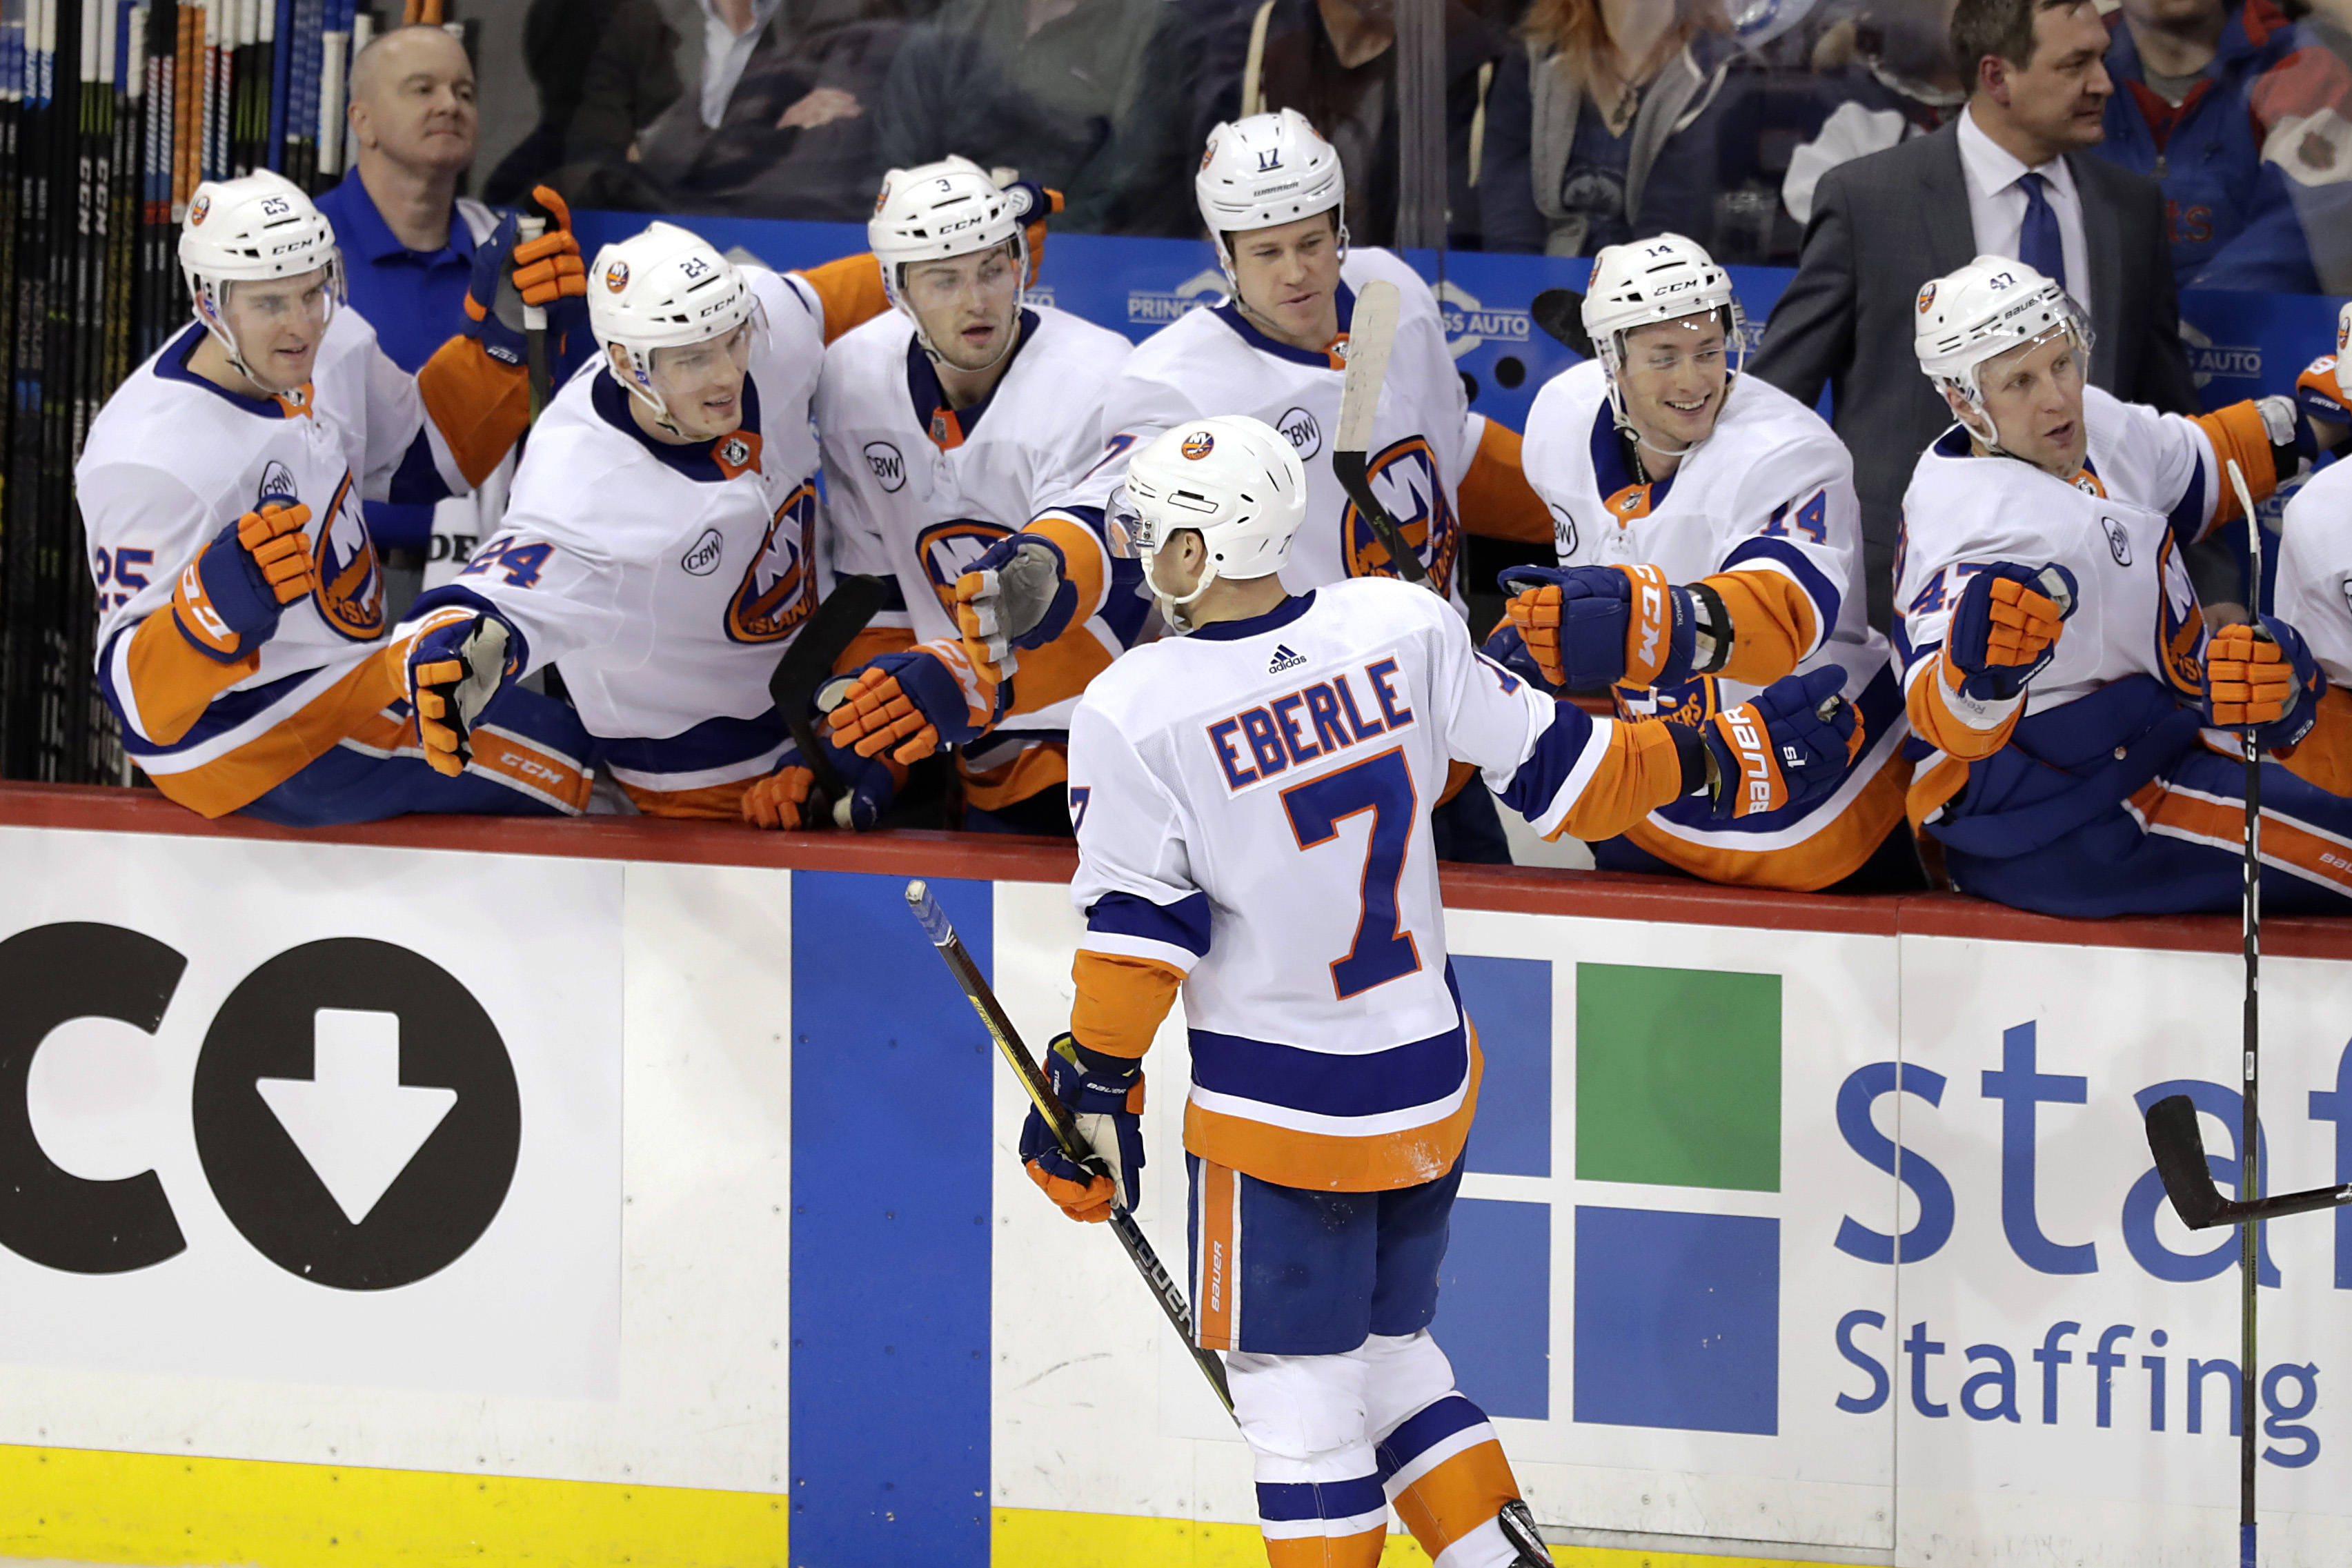 Mar 28, 2019; Winnipeg, Manitoba, CAN; New York Islanders right wing Jordan Eberle (7) celebrates after scoring a third period goal against the Winnipeg Jets at Bell MTS Place. Mandatory Credit: James Carey Lauder-USA TODAY Sports